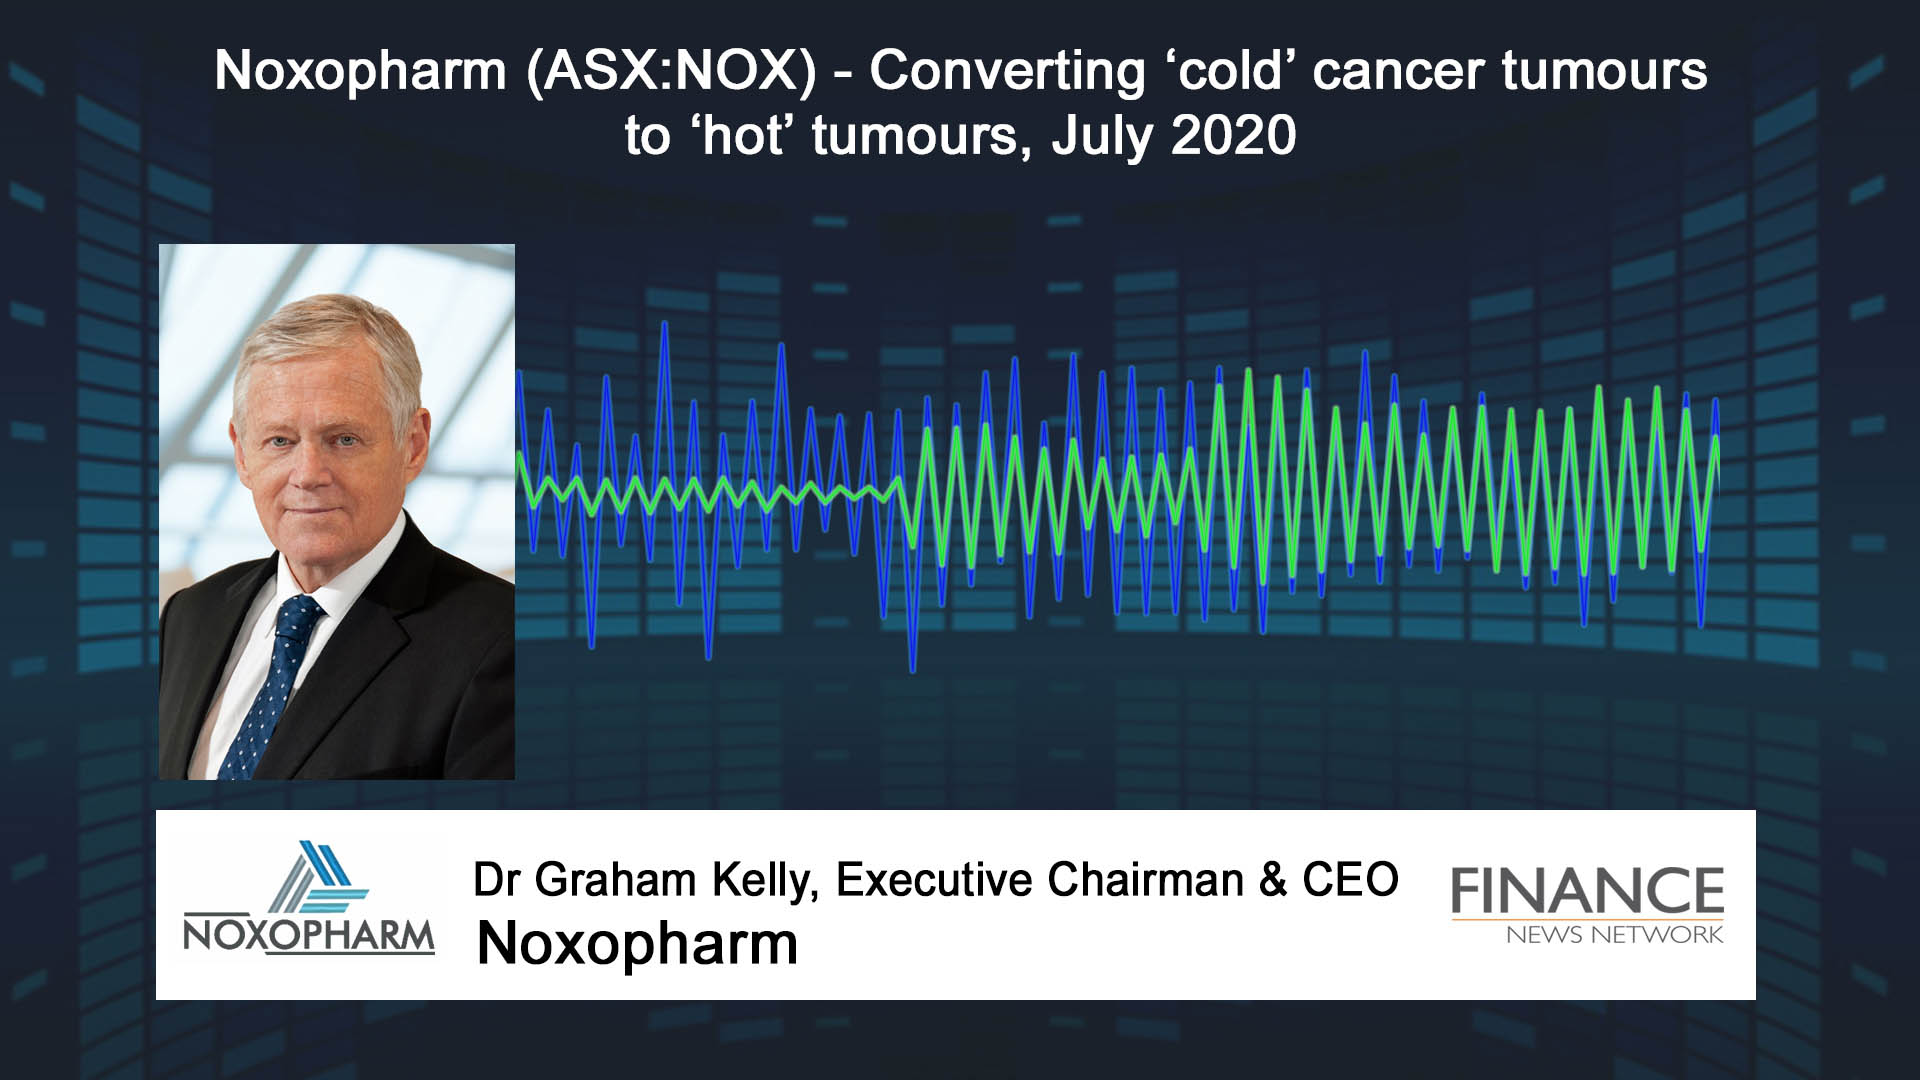 """Noxopharm (ASX:NOX) - Converting """"cold"""" cancer tumours to """"hot"""" tumours"""